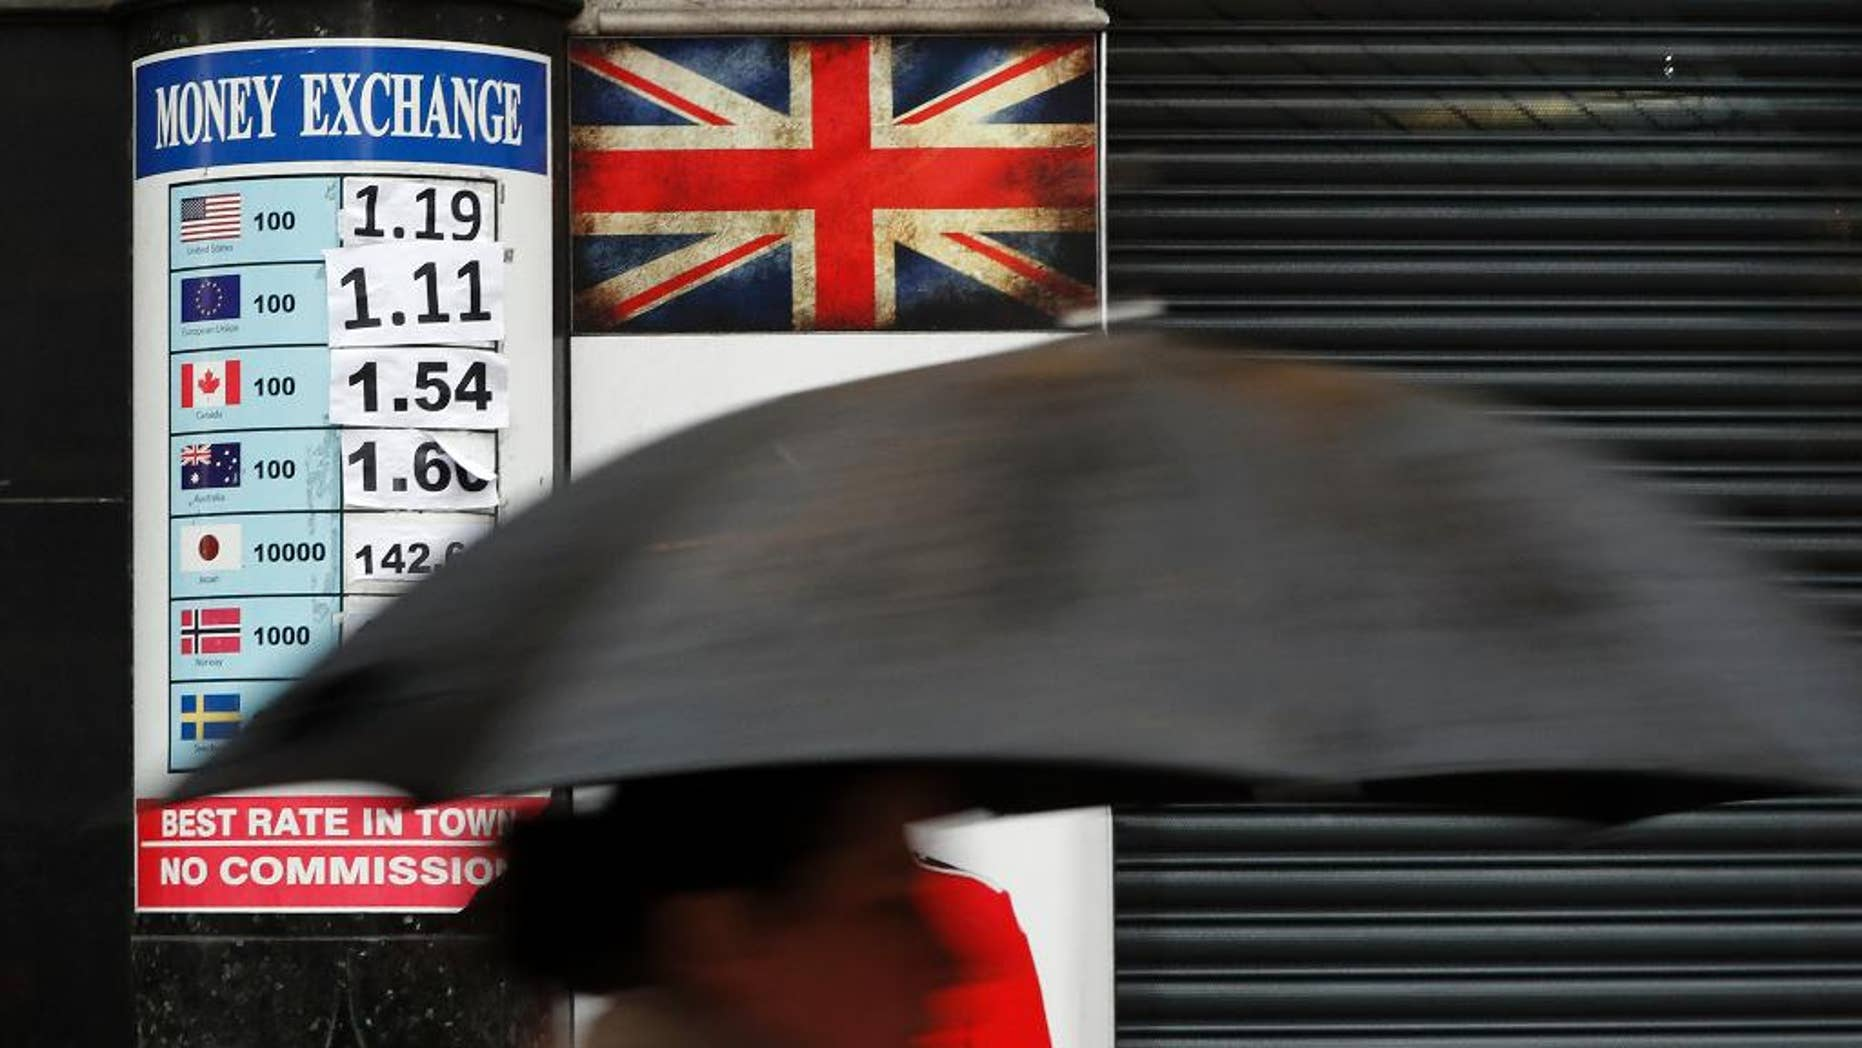 A pedestrian with an umbrella passes a board showing the exchange rates at a money exchange bureau in London, Monday, Jan. 16, 2017. The British pound fell to a three-month low amid reports Prime Minister Theresa May will signal her willingness to make a clean break with the European Union. Sterling fell below 1.20 US Dollars before recovering slightly Monday. (AP Photo/Kirsty Wigglesworth)